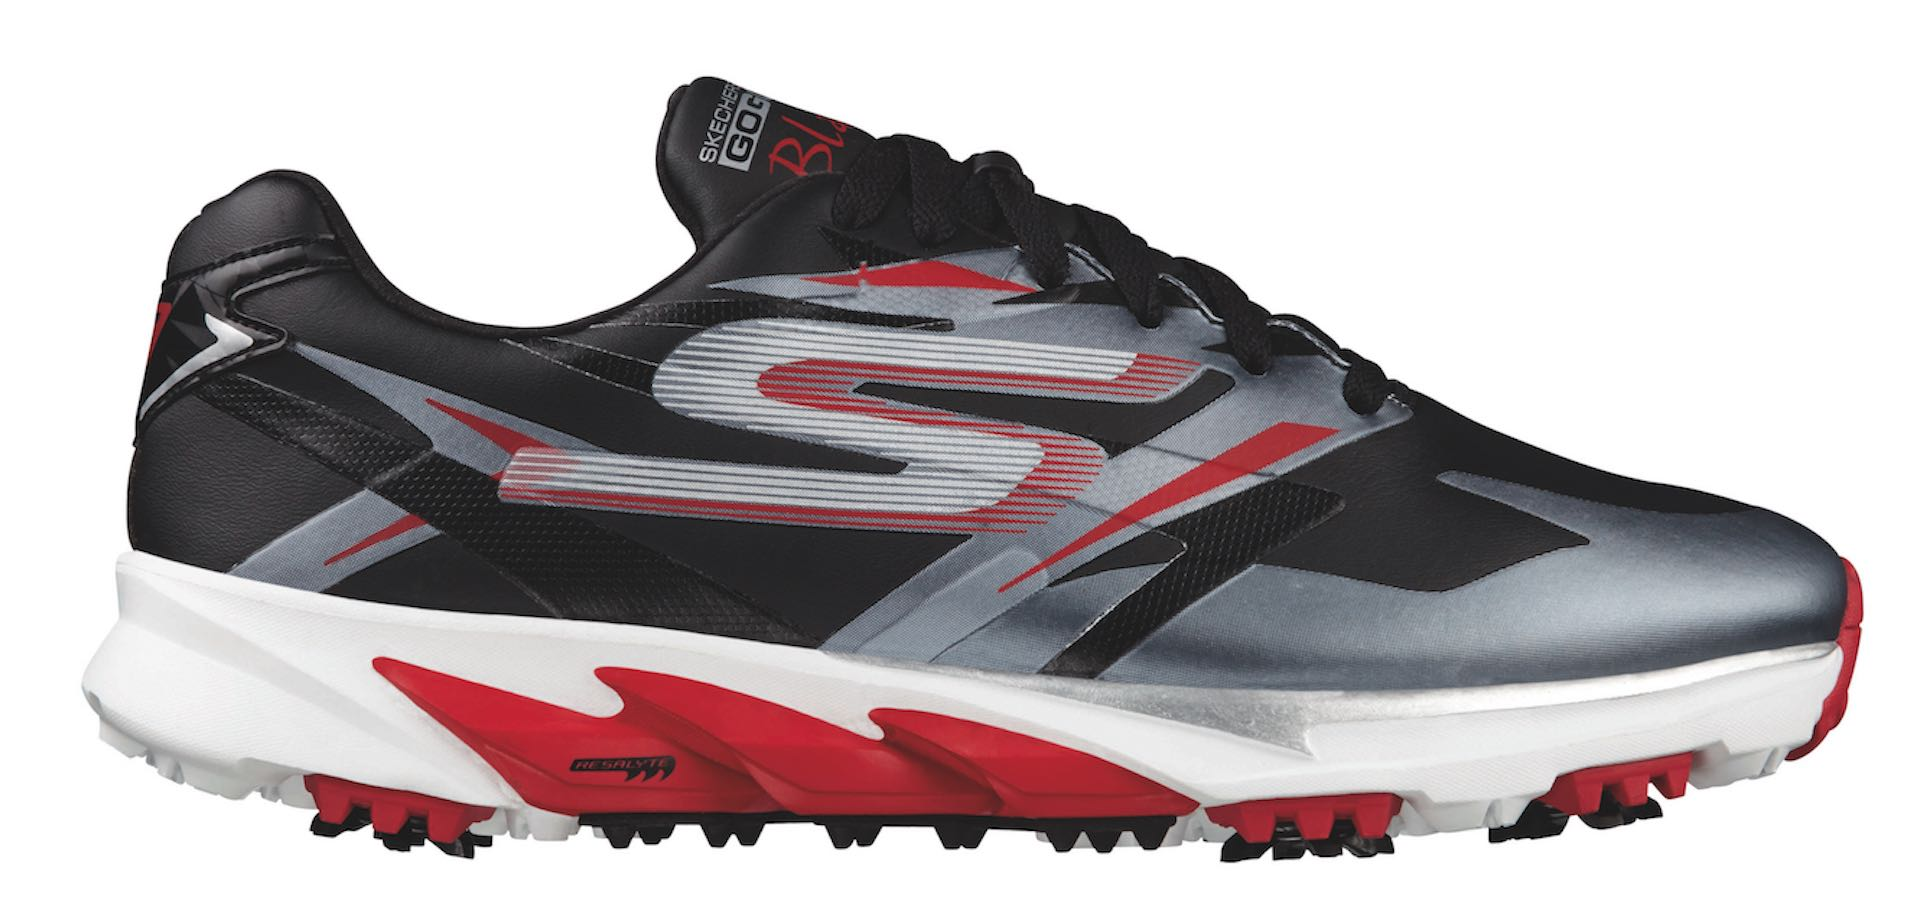 New Skechers Golf Shoes